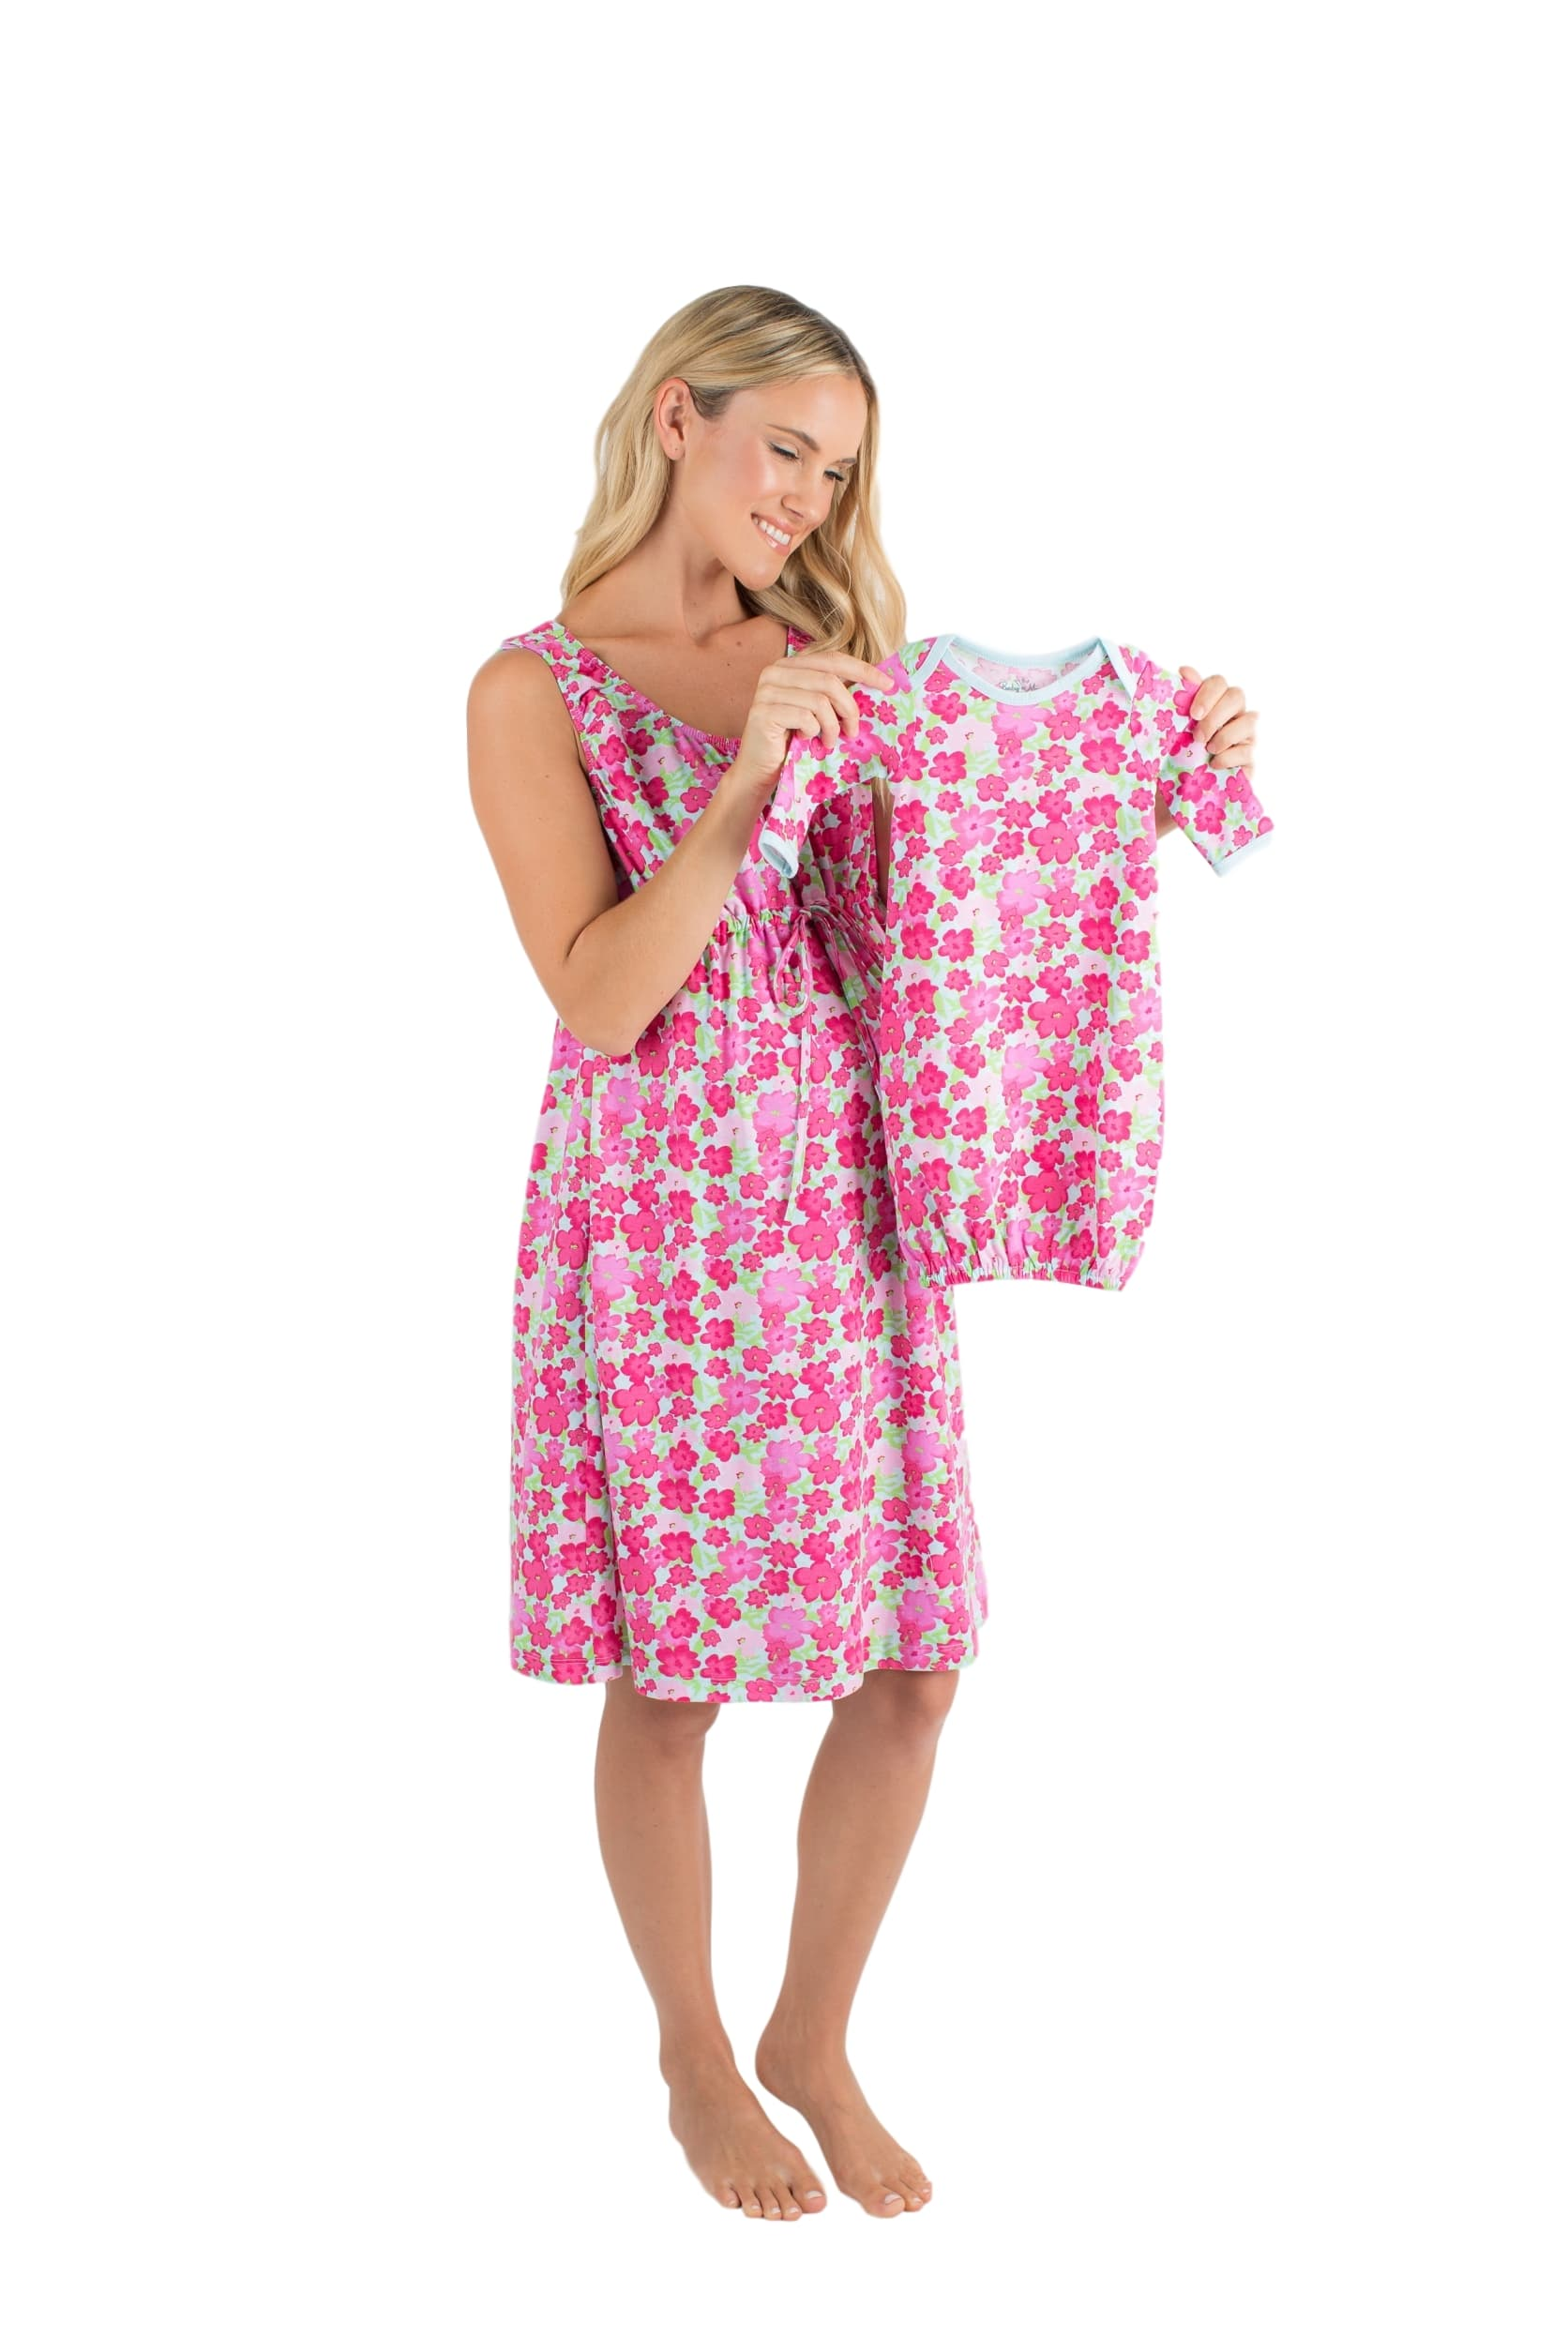 Brooke 3 in 1 Labor Gown & Baby Gown Set